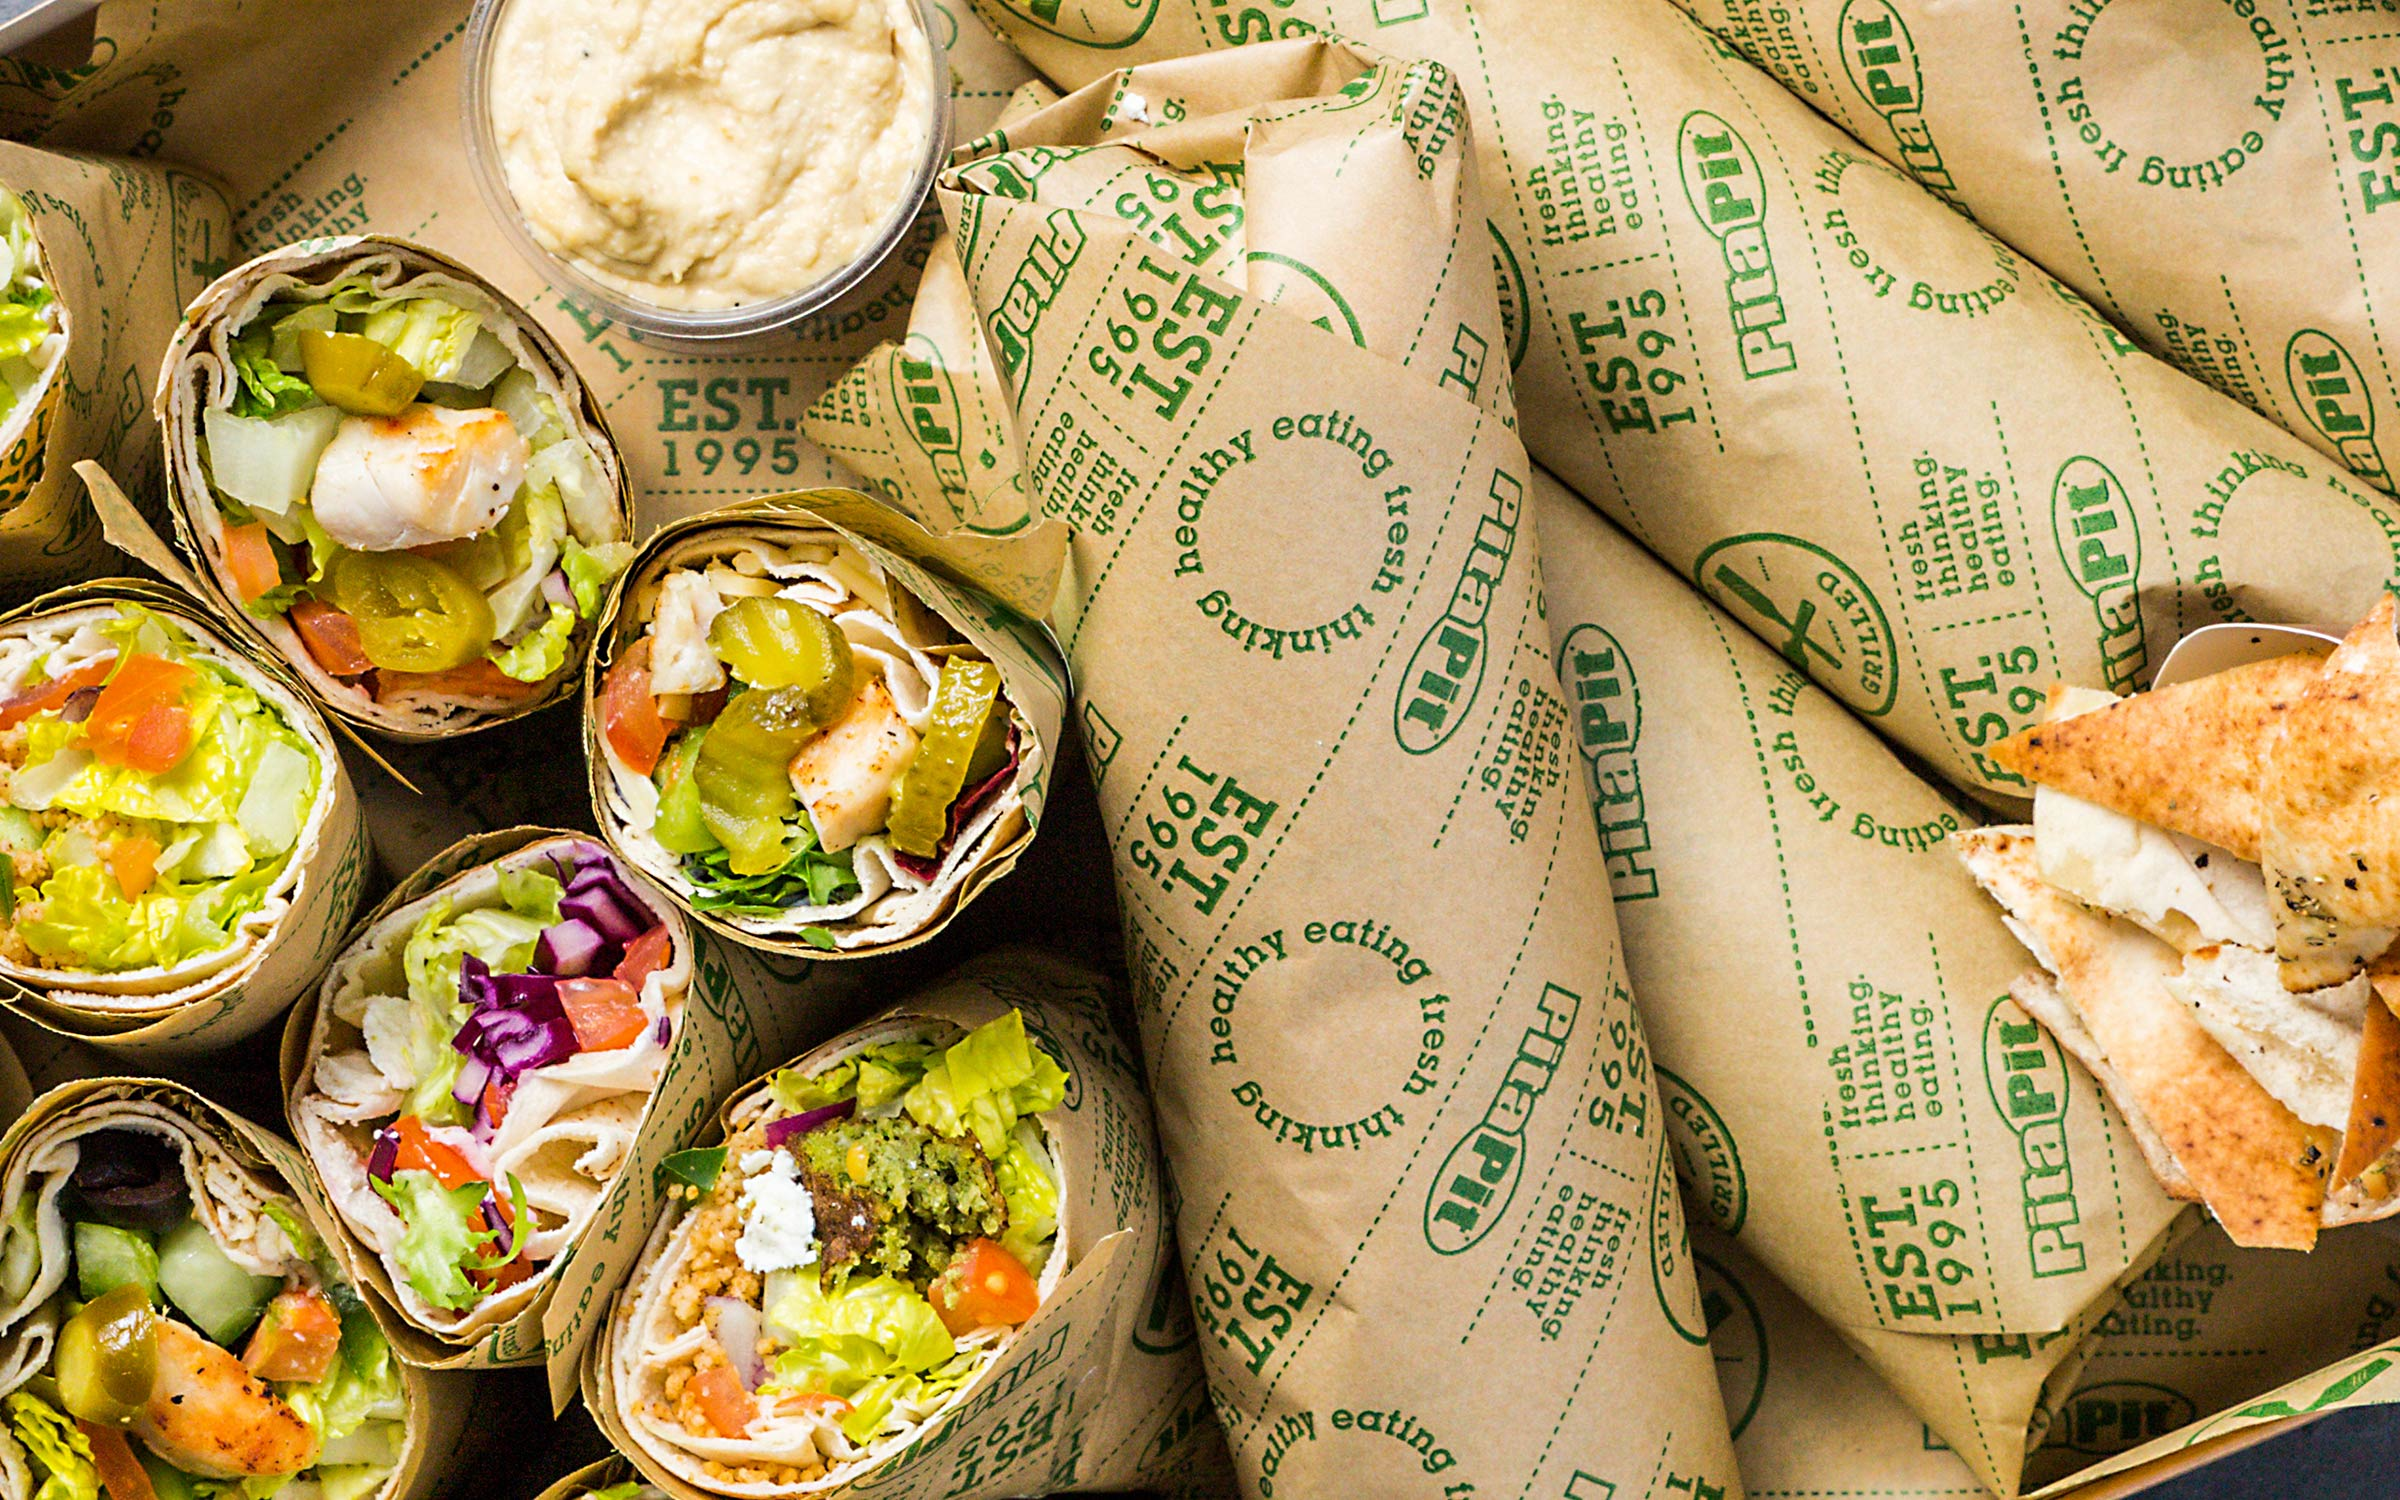 What To Learn More? - Send us some information why you think you'd be a great Pita Pit Master Franchisee!